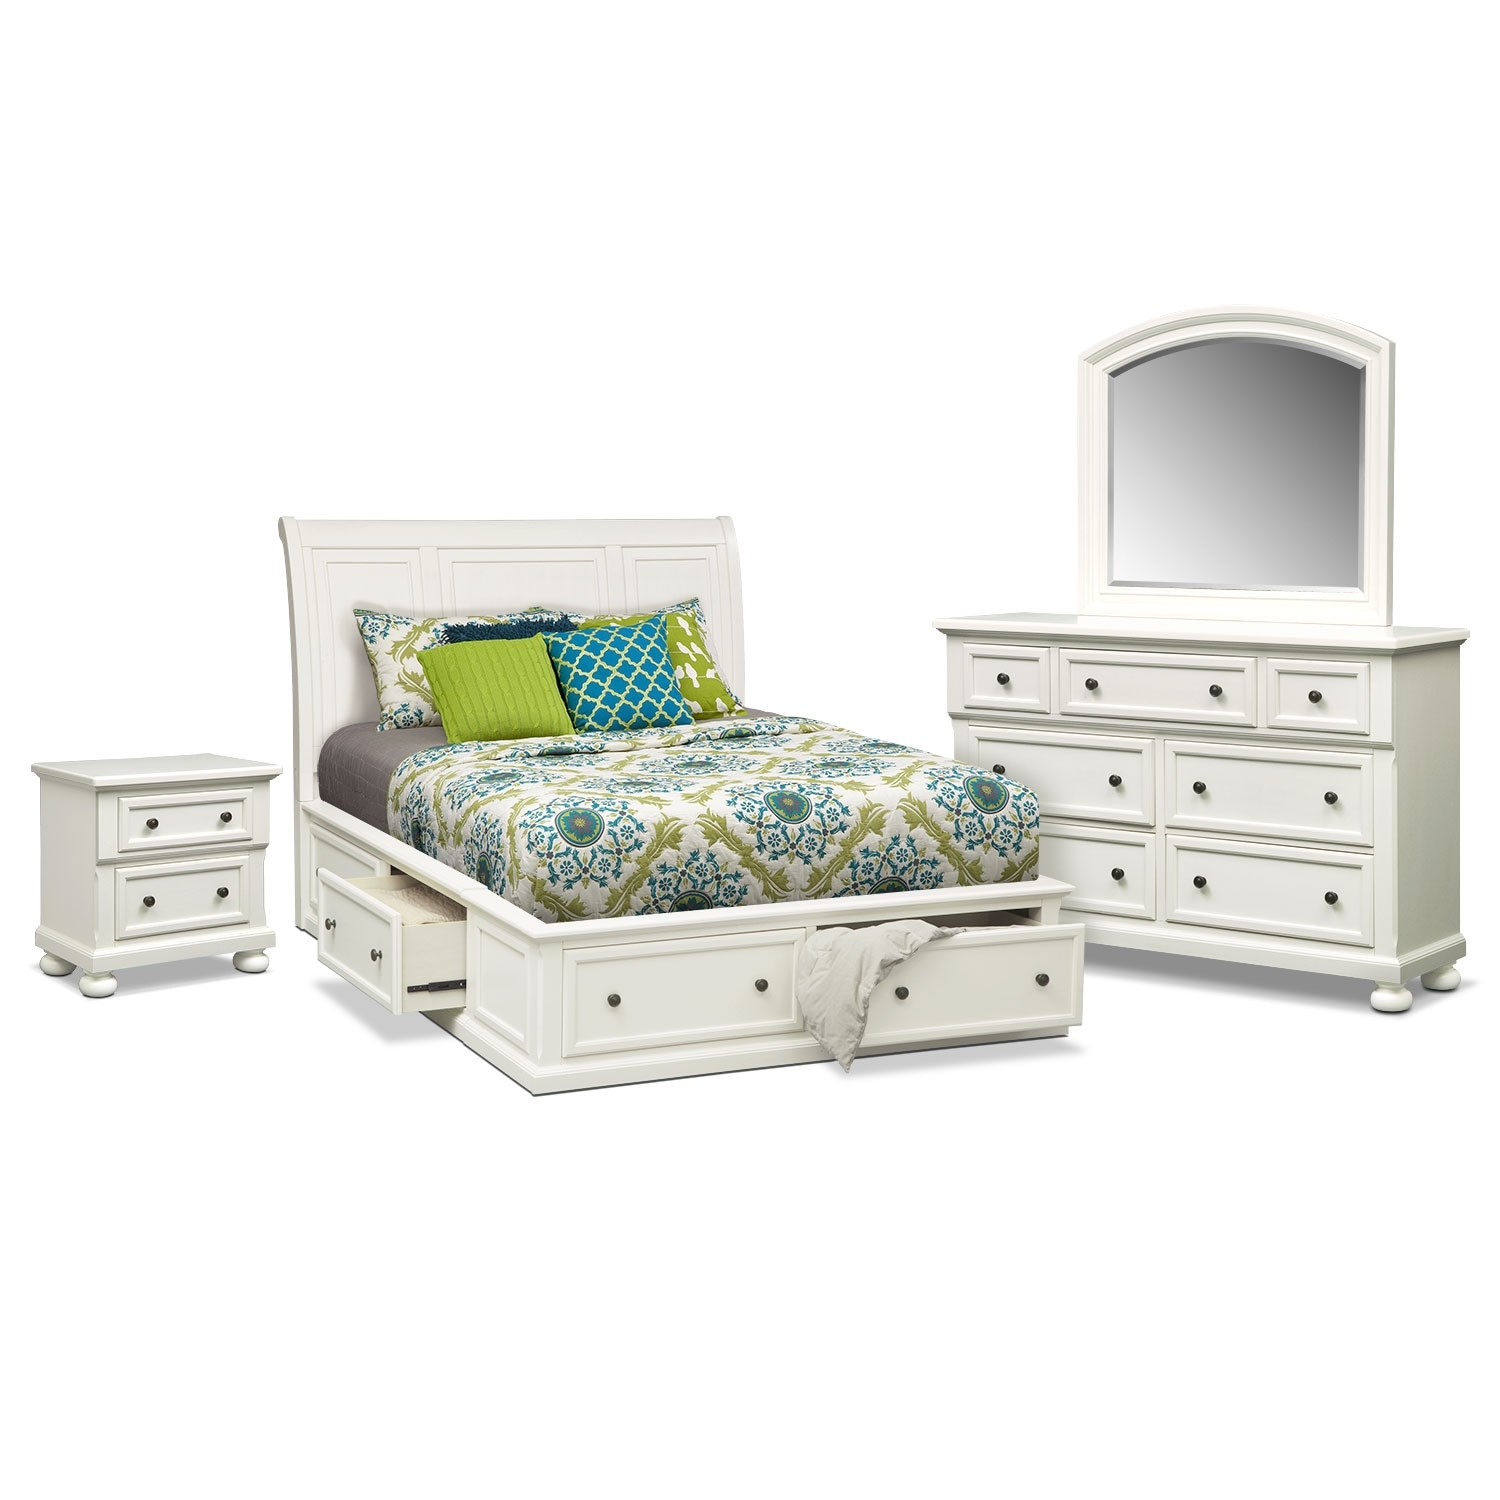 Hanover queen storage bed white american signature - Queen size bedroom set with storage ...